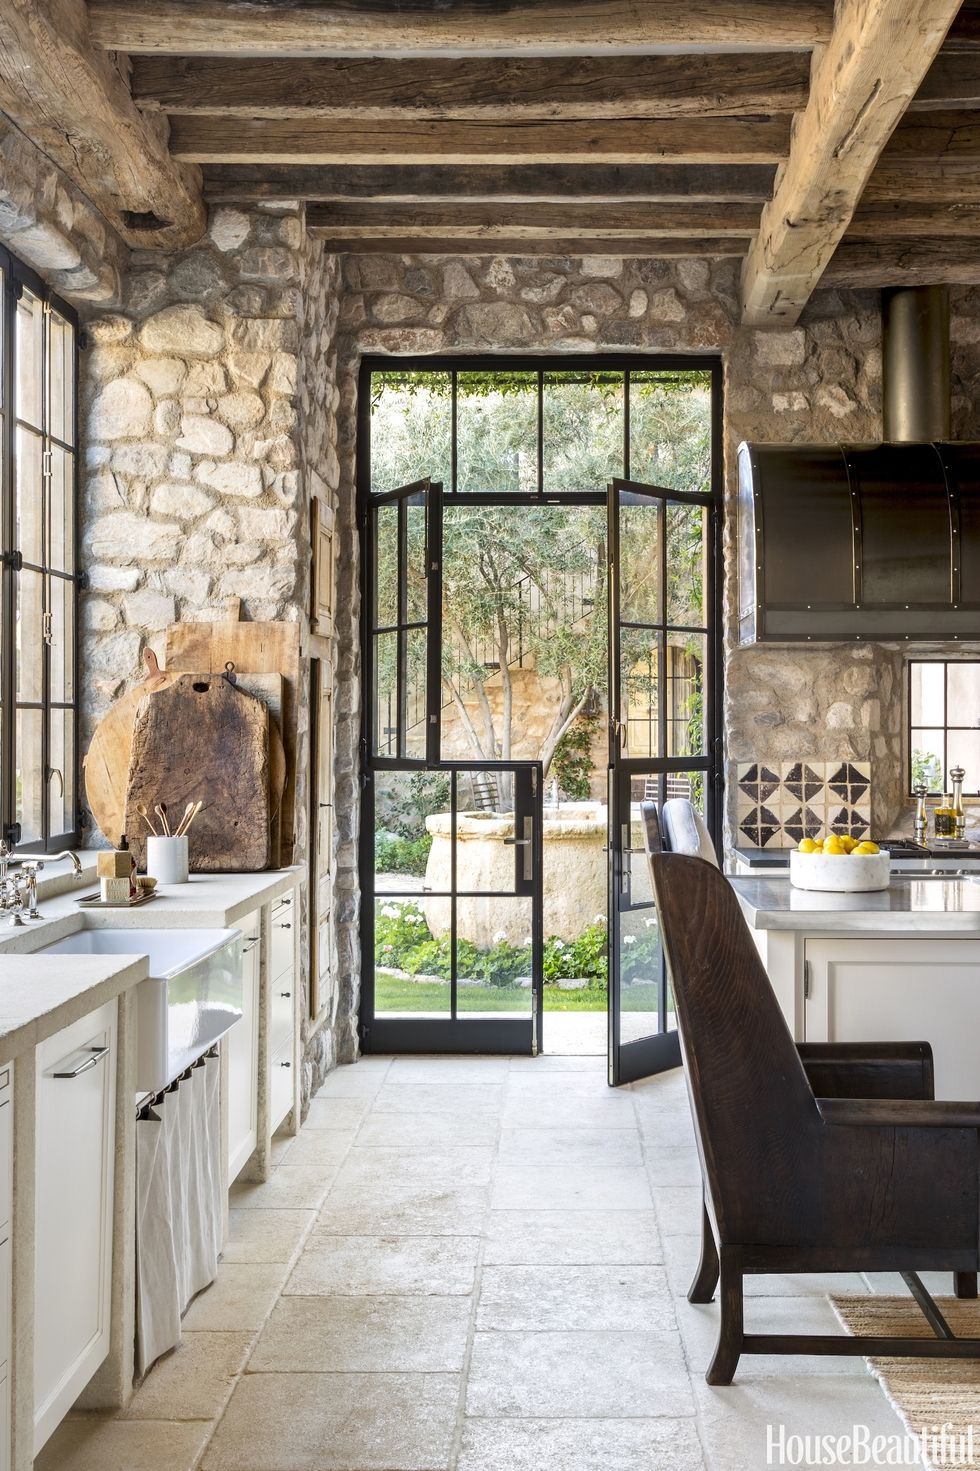 Scottsdale arizona rustic french country kitchen content House beautiful com kitchens